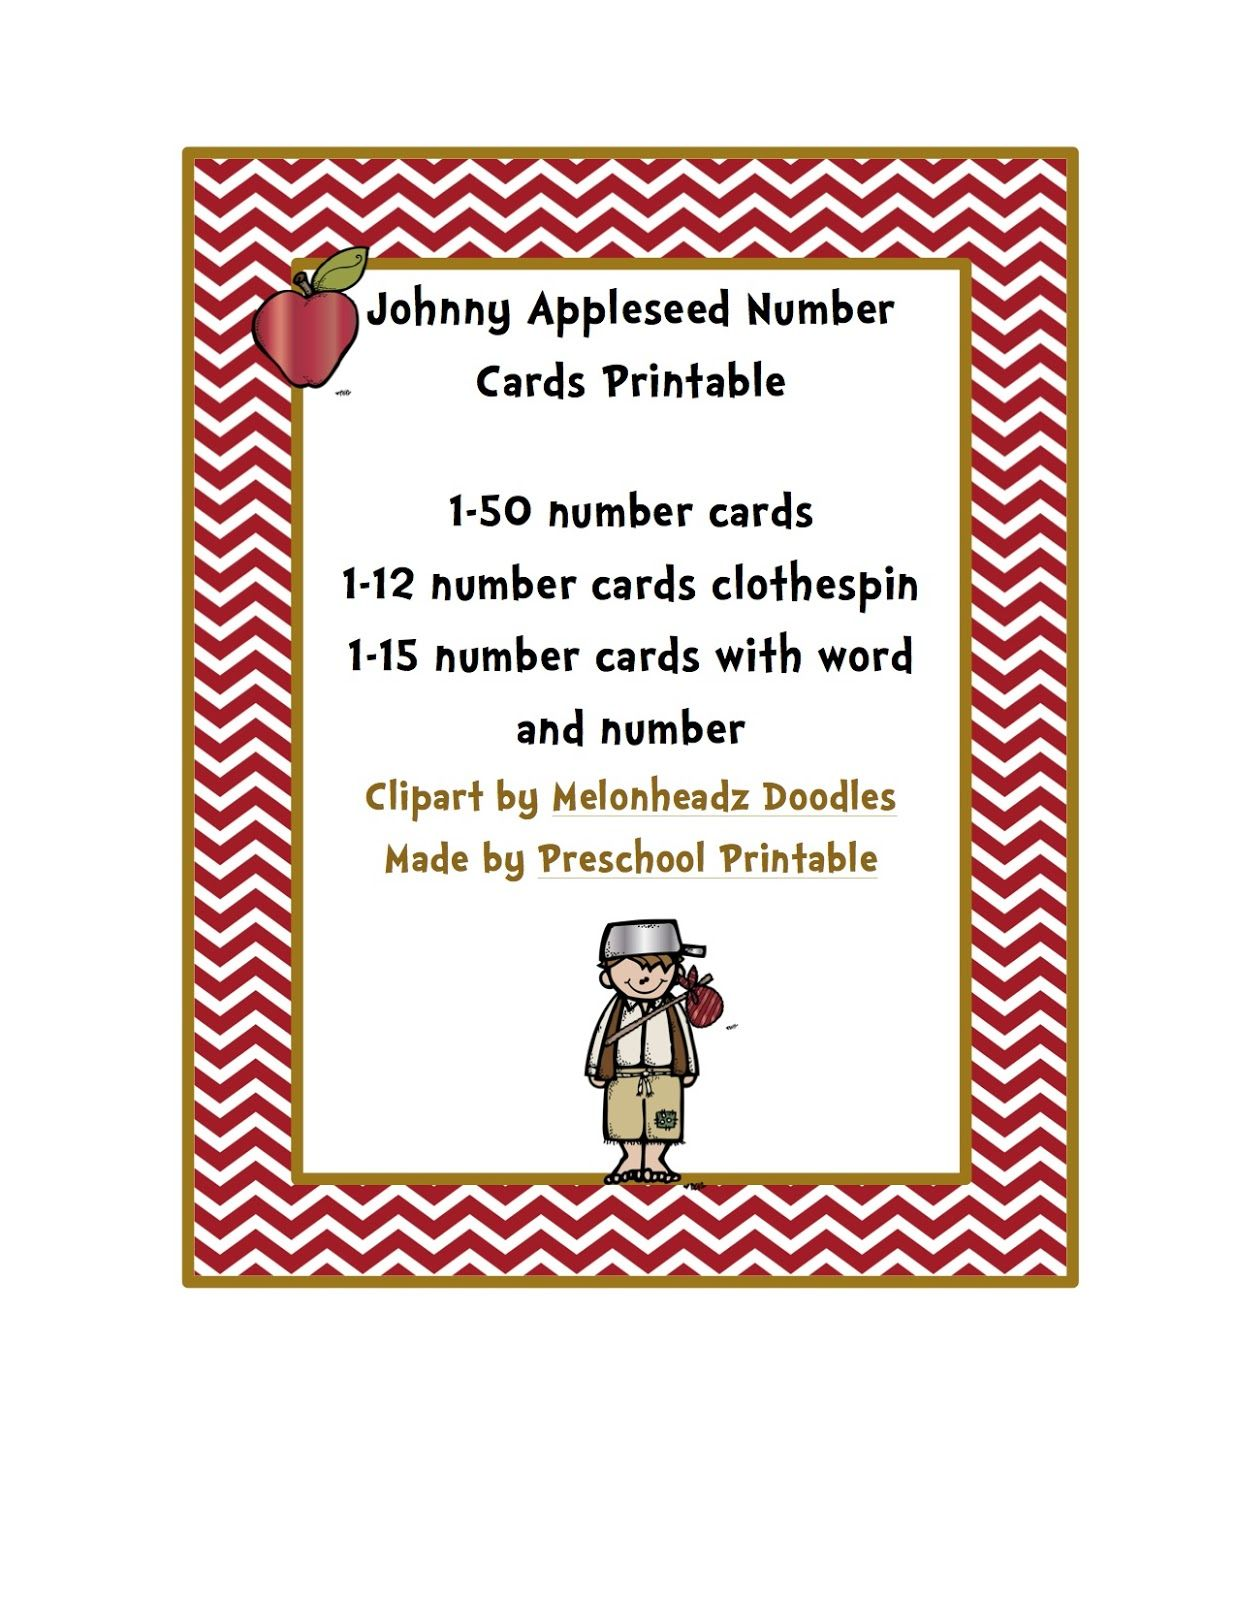 Johnny Appleseed Number Cards